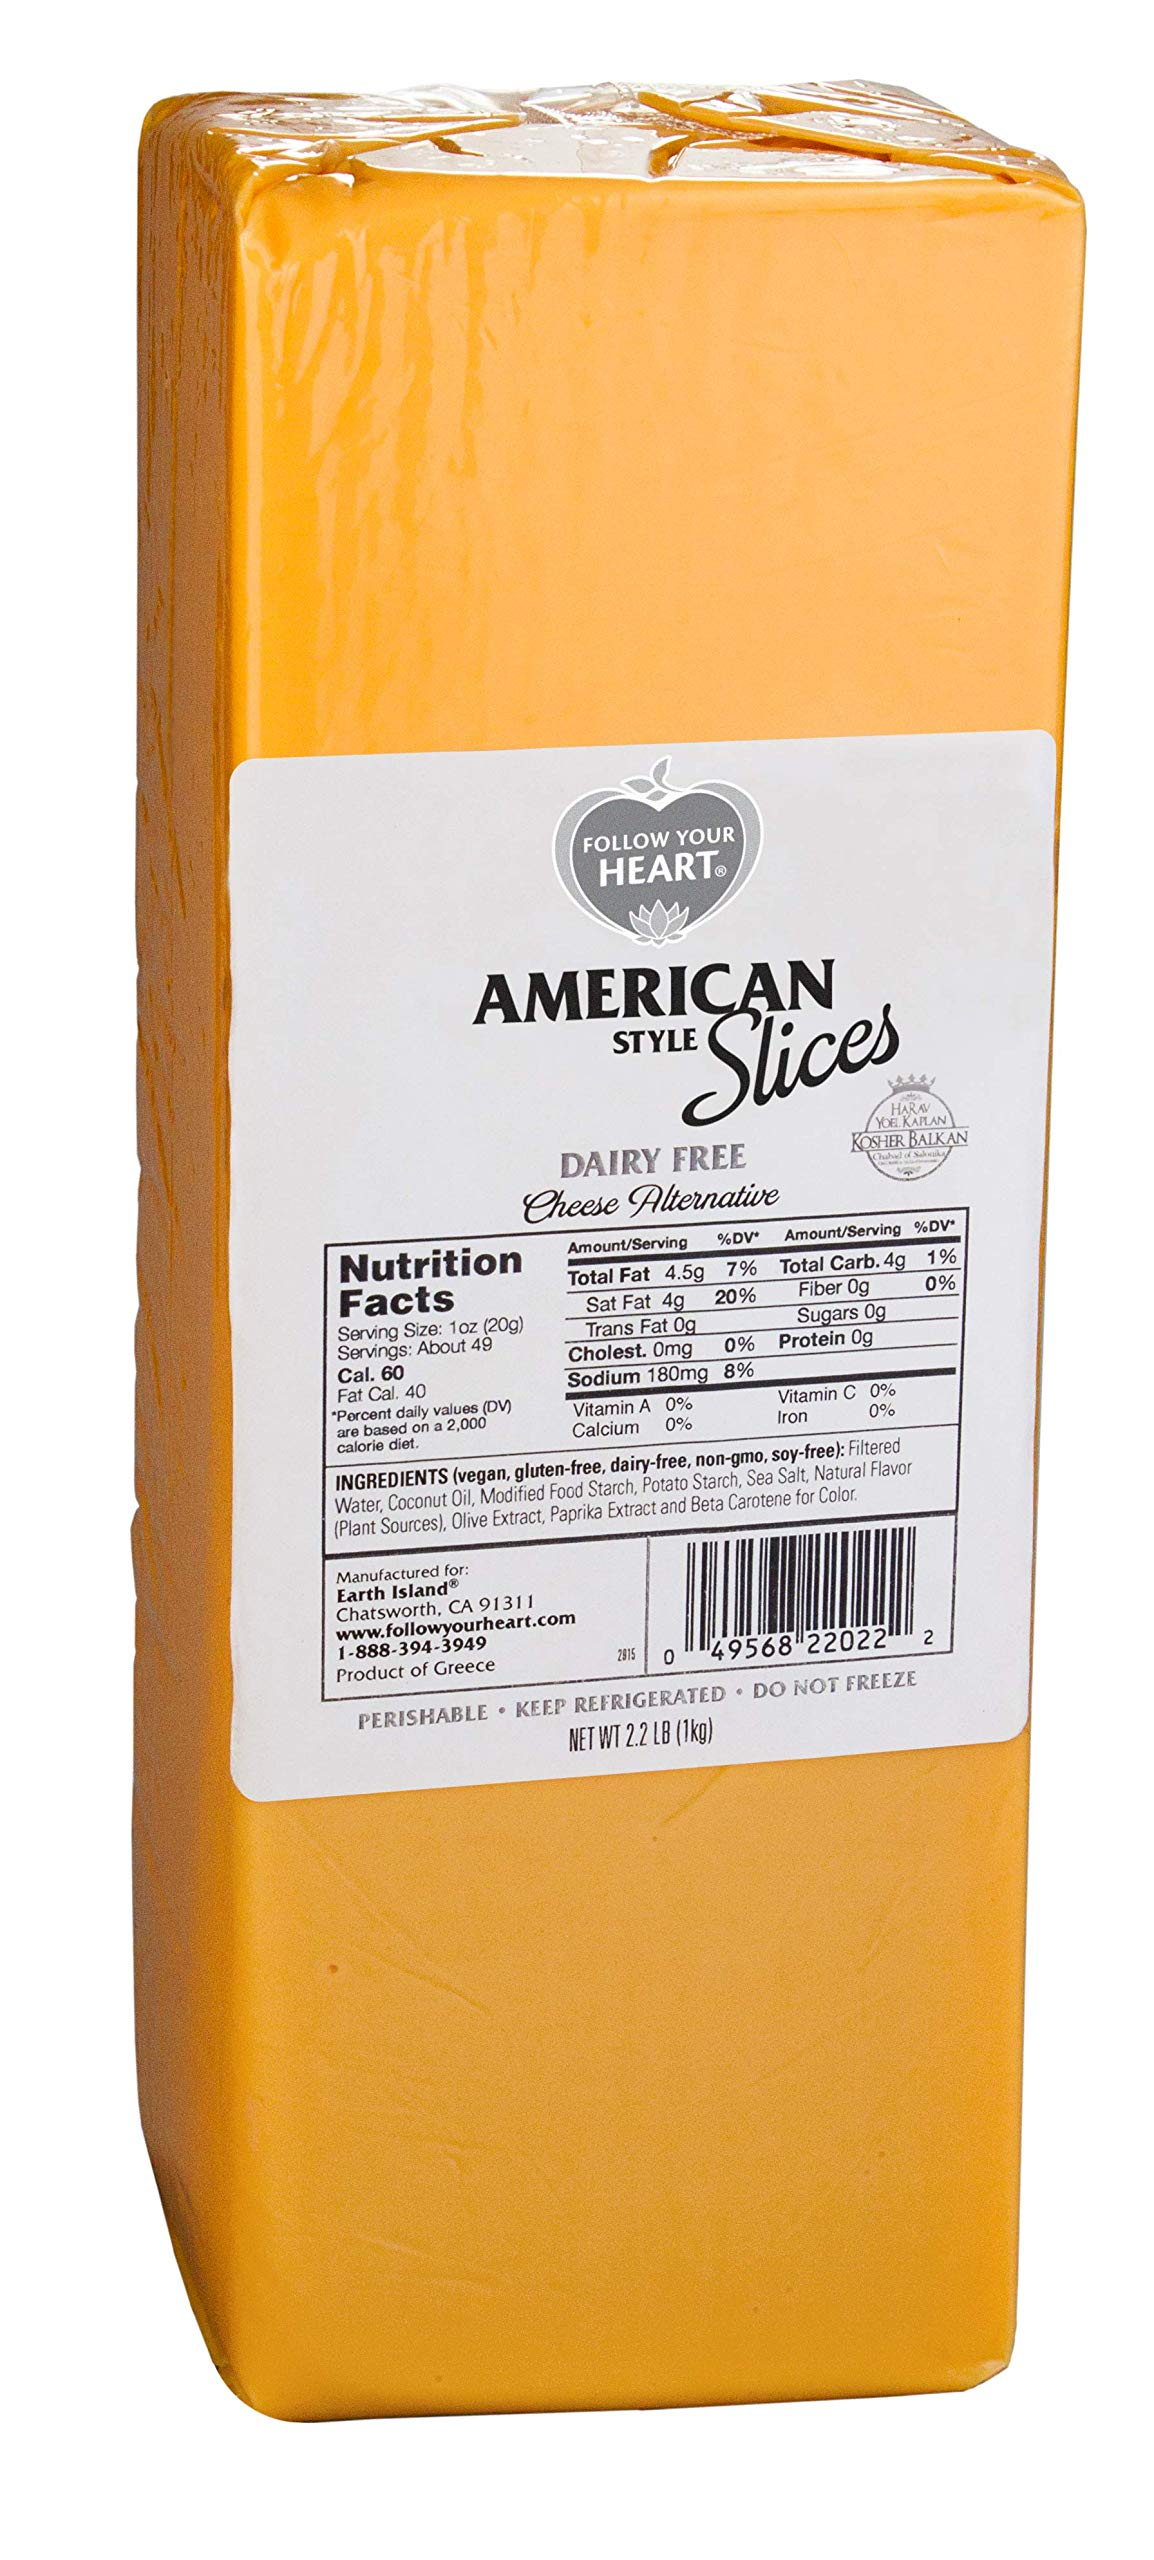 Follow Your Heart Dairy Free, Non-GMO, Soy Free, Vegan American Style Slices Cheese Alternative 2.2 lb (50 slices) Pack of 14 by Follow Your Heart (Image #1)